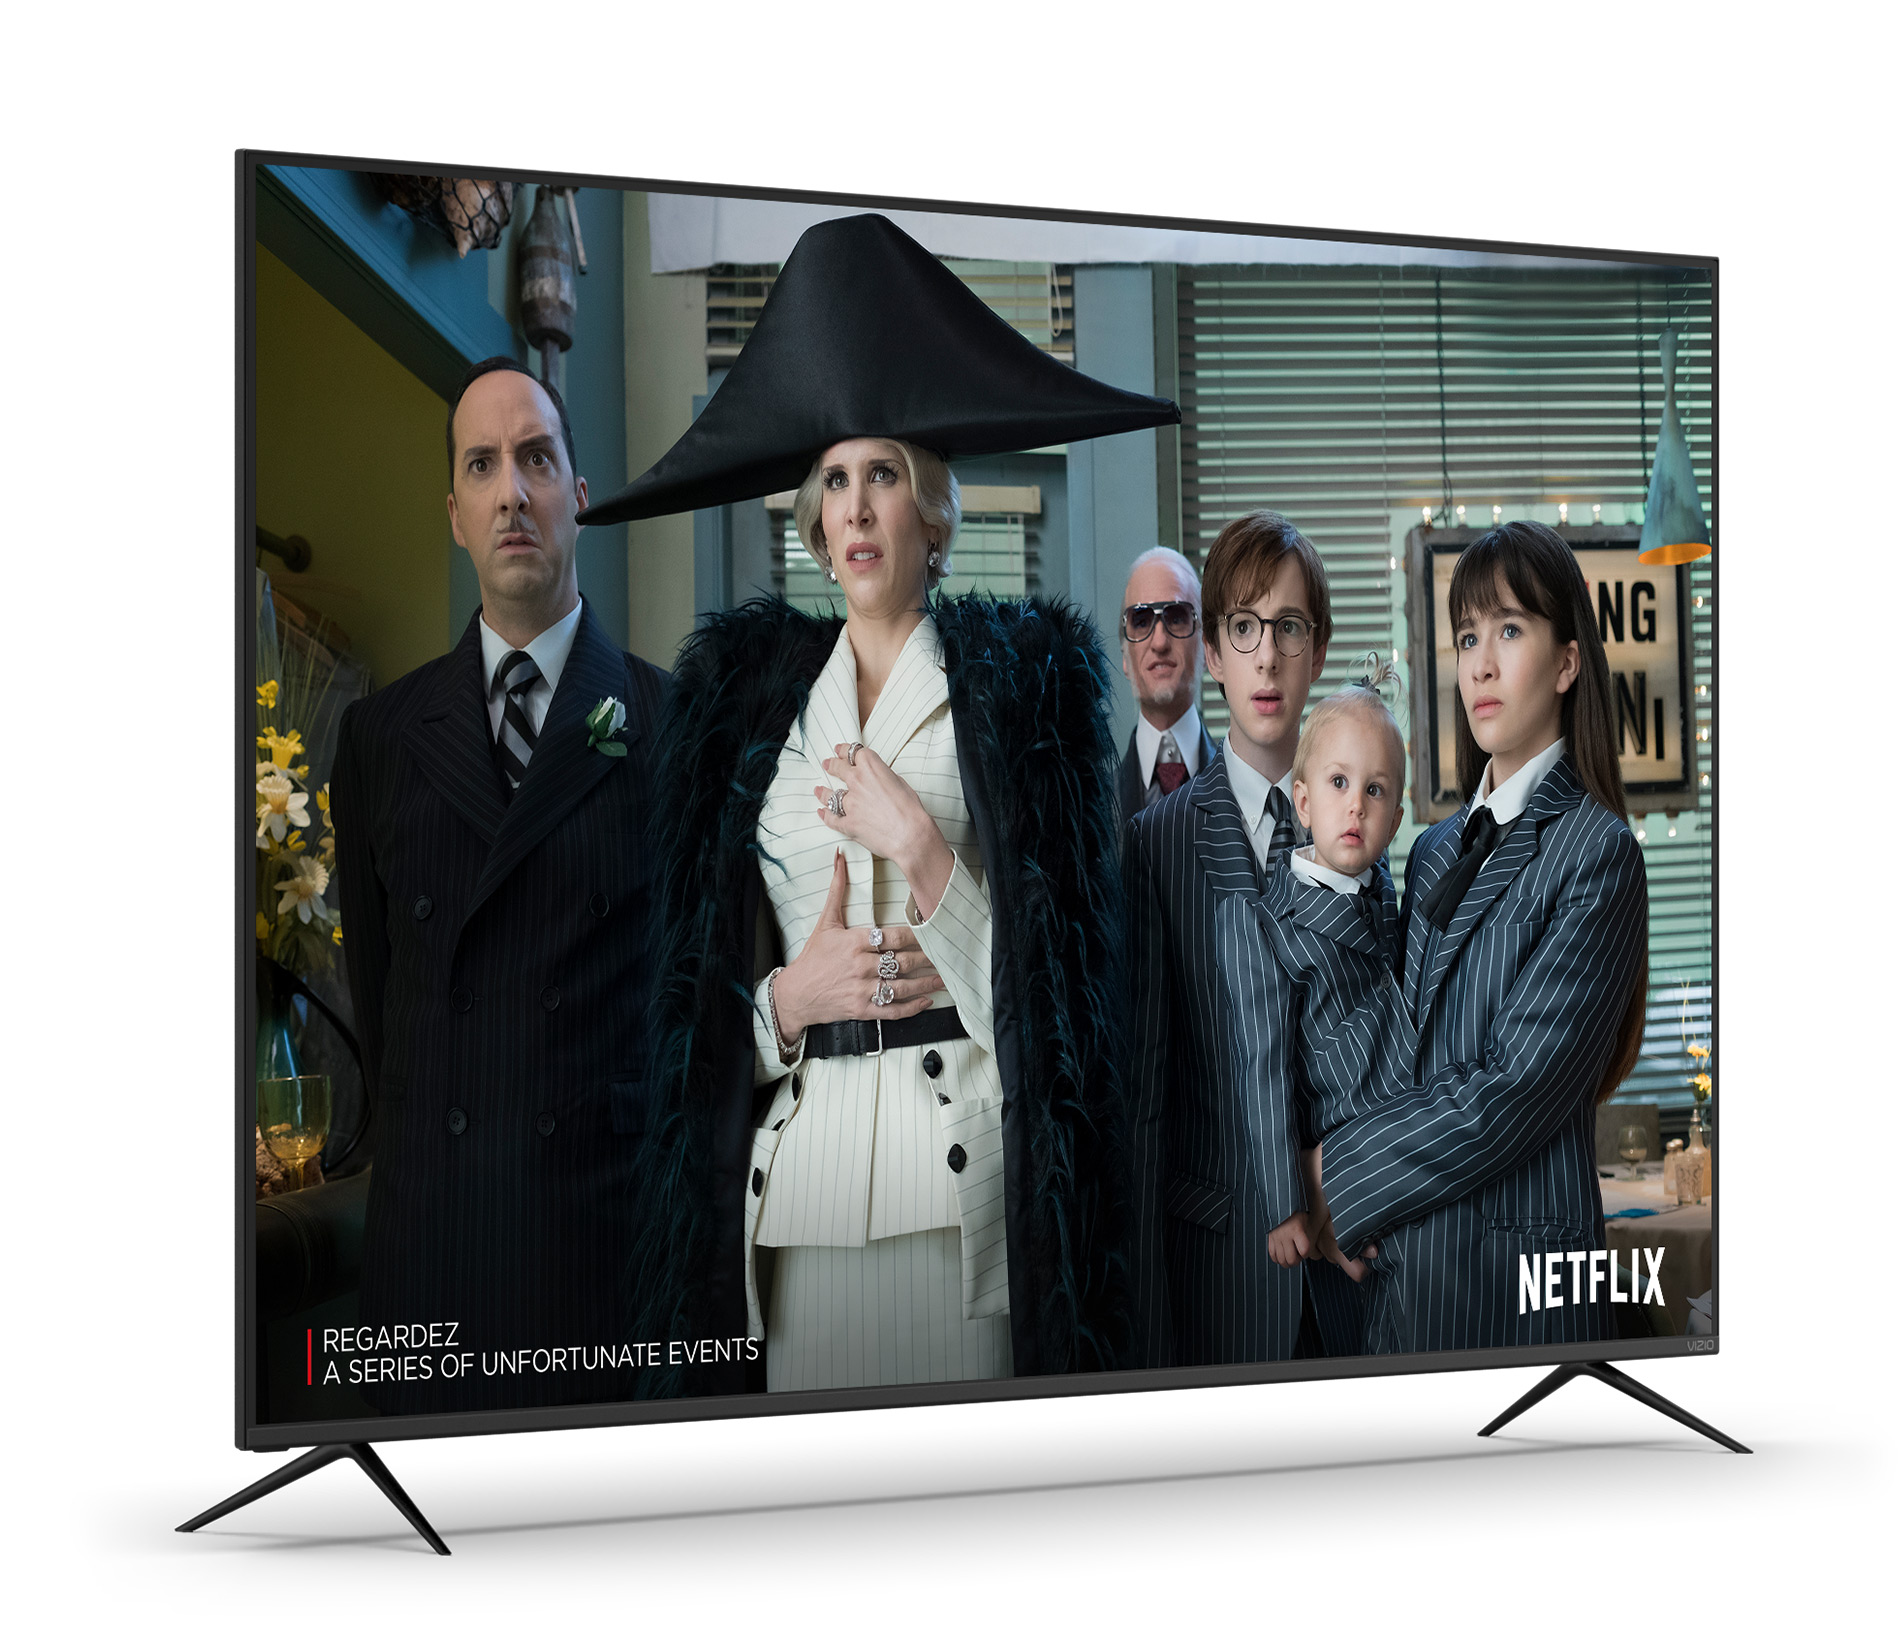 VIZIO M-Series TV